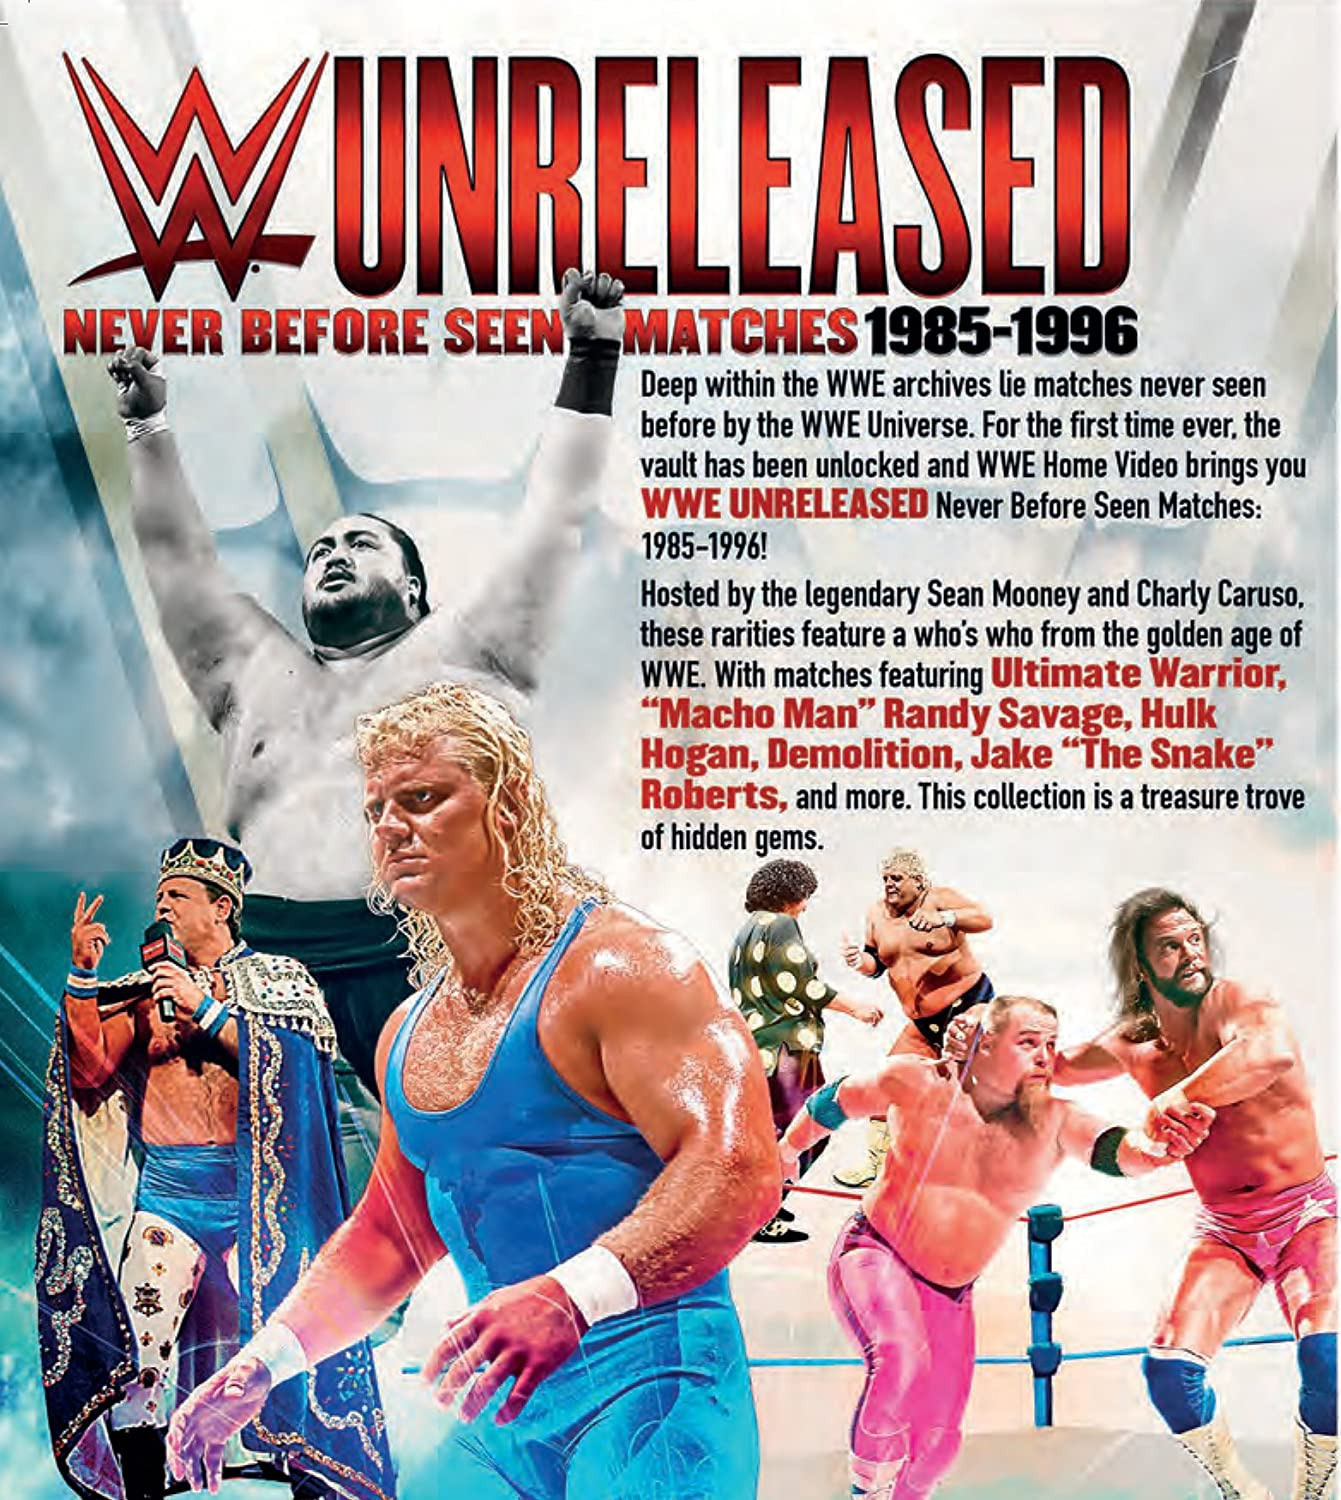 WWE Unreleased: 1986-1995 [DVD] [Reino Unido]: Amazon.es ...